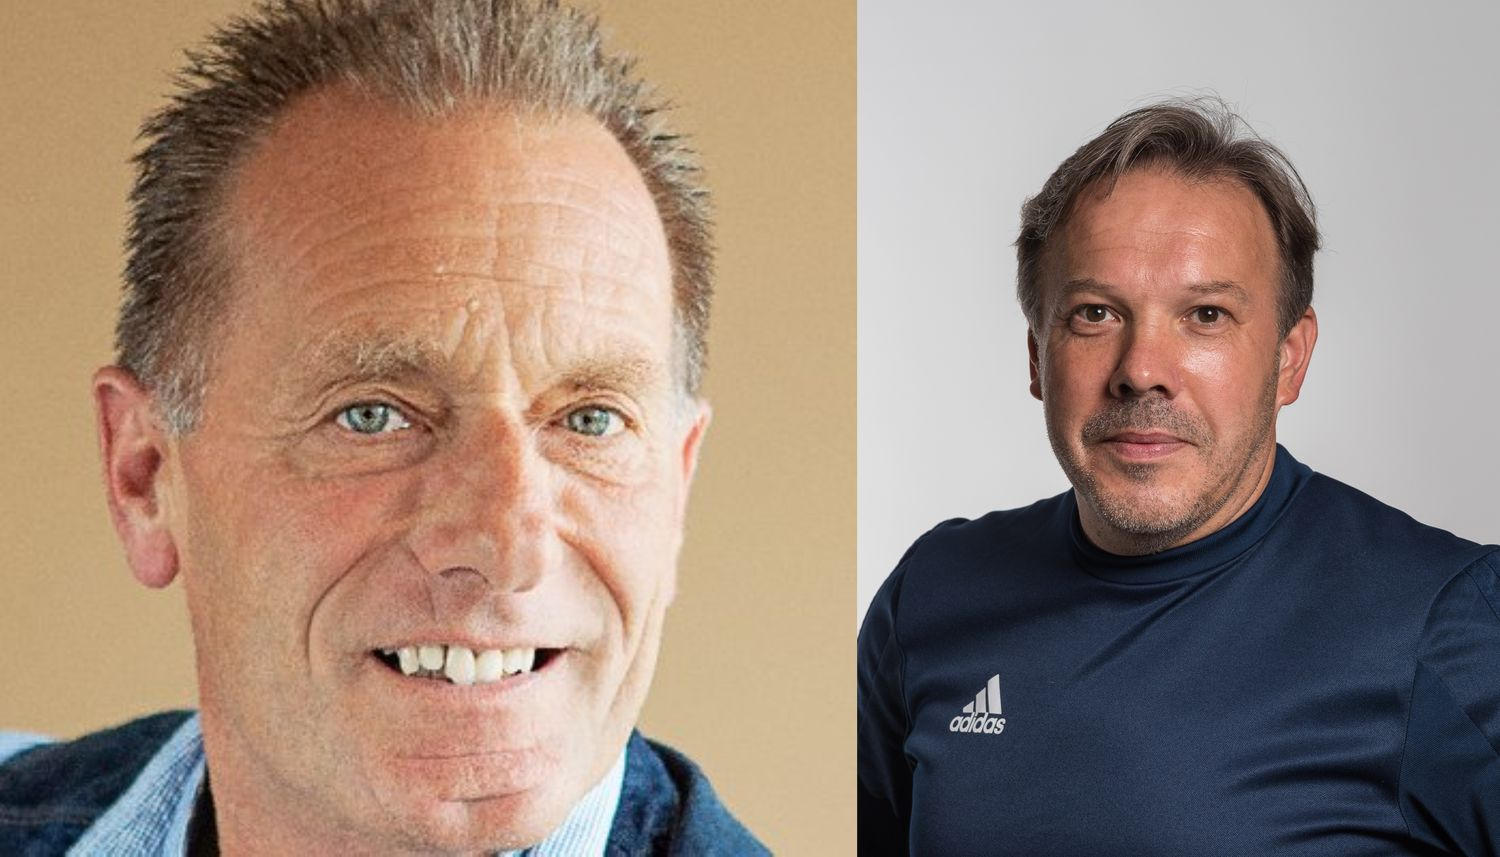 Saison 2020/21: Michael Giani und Rob Wolsleger bilden Trainergespann der U19